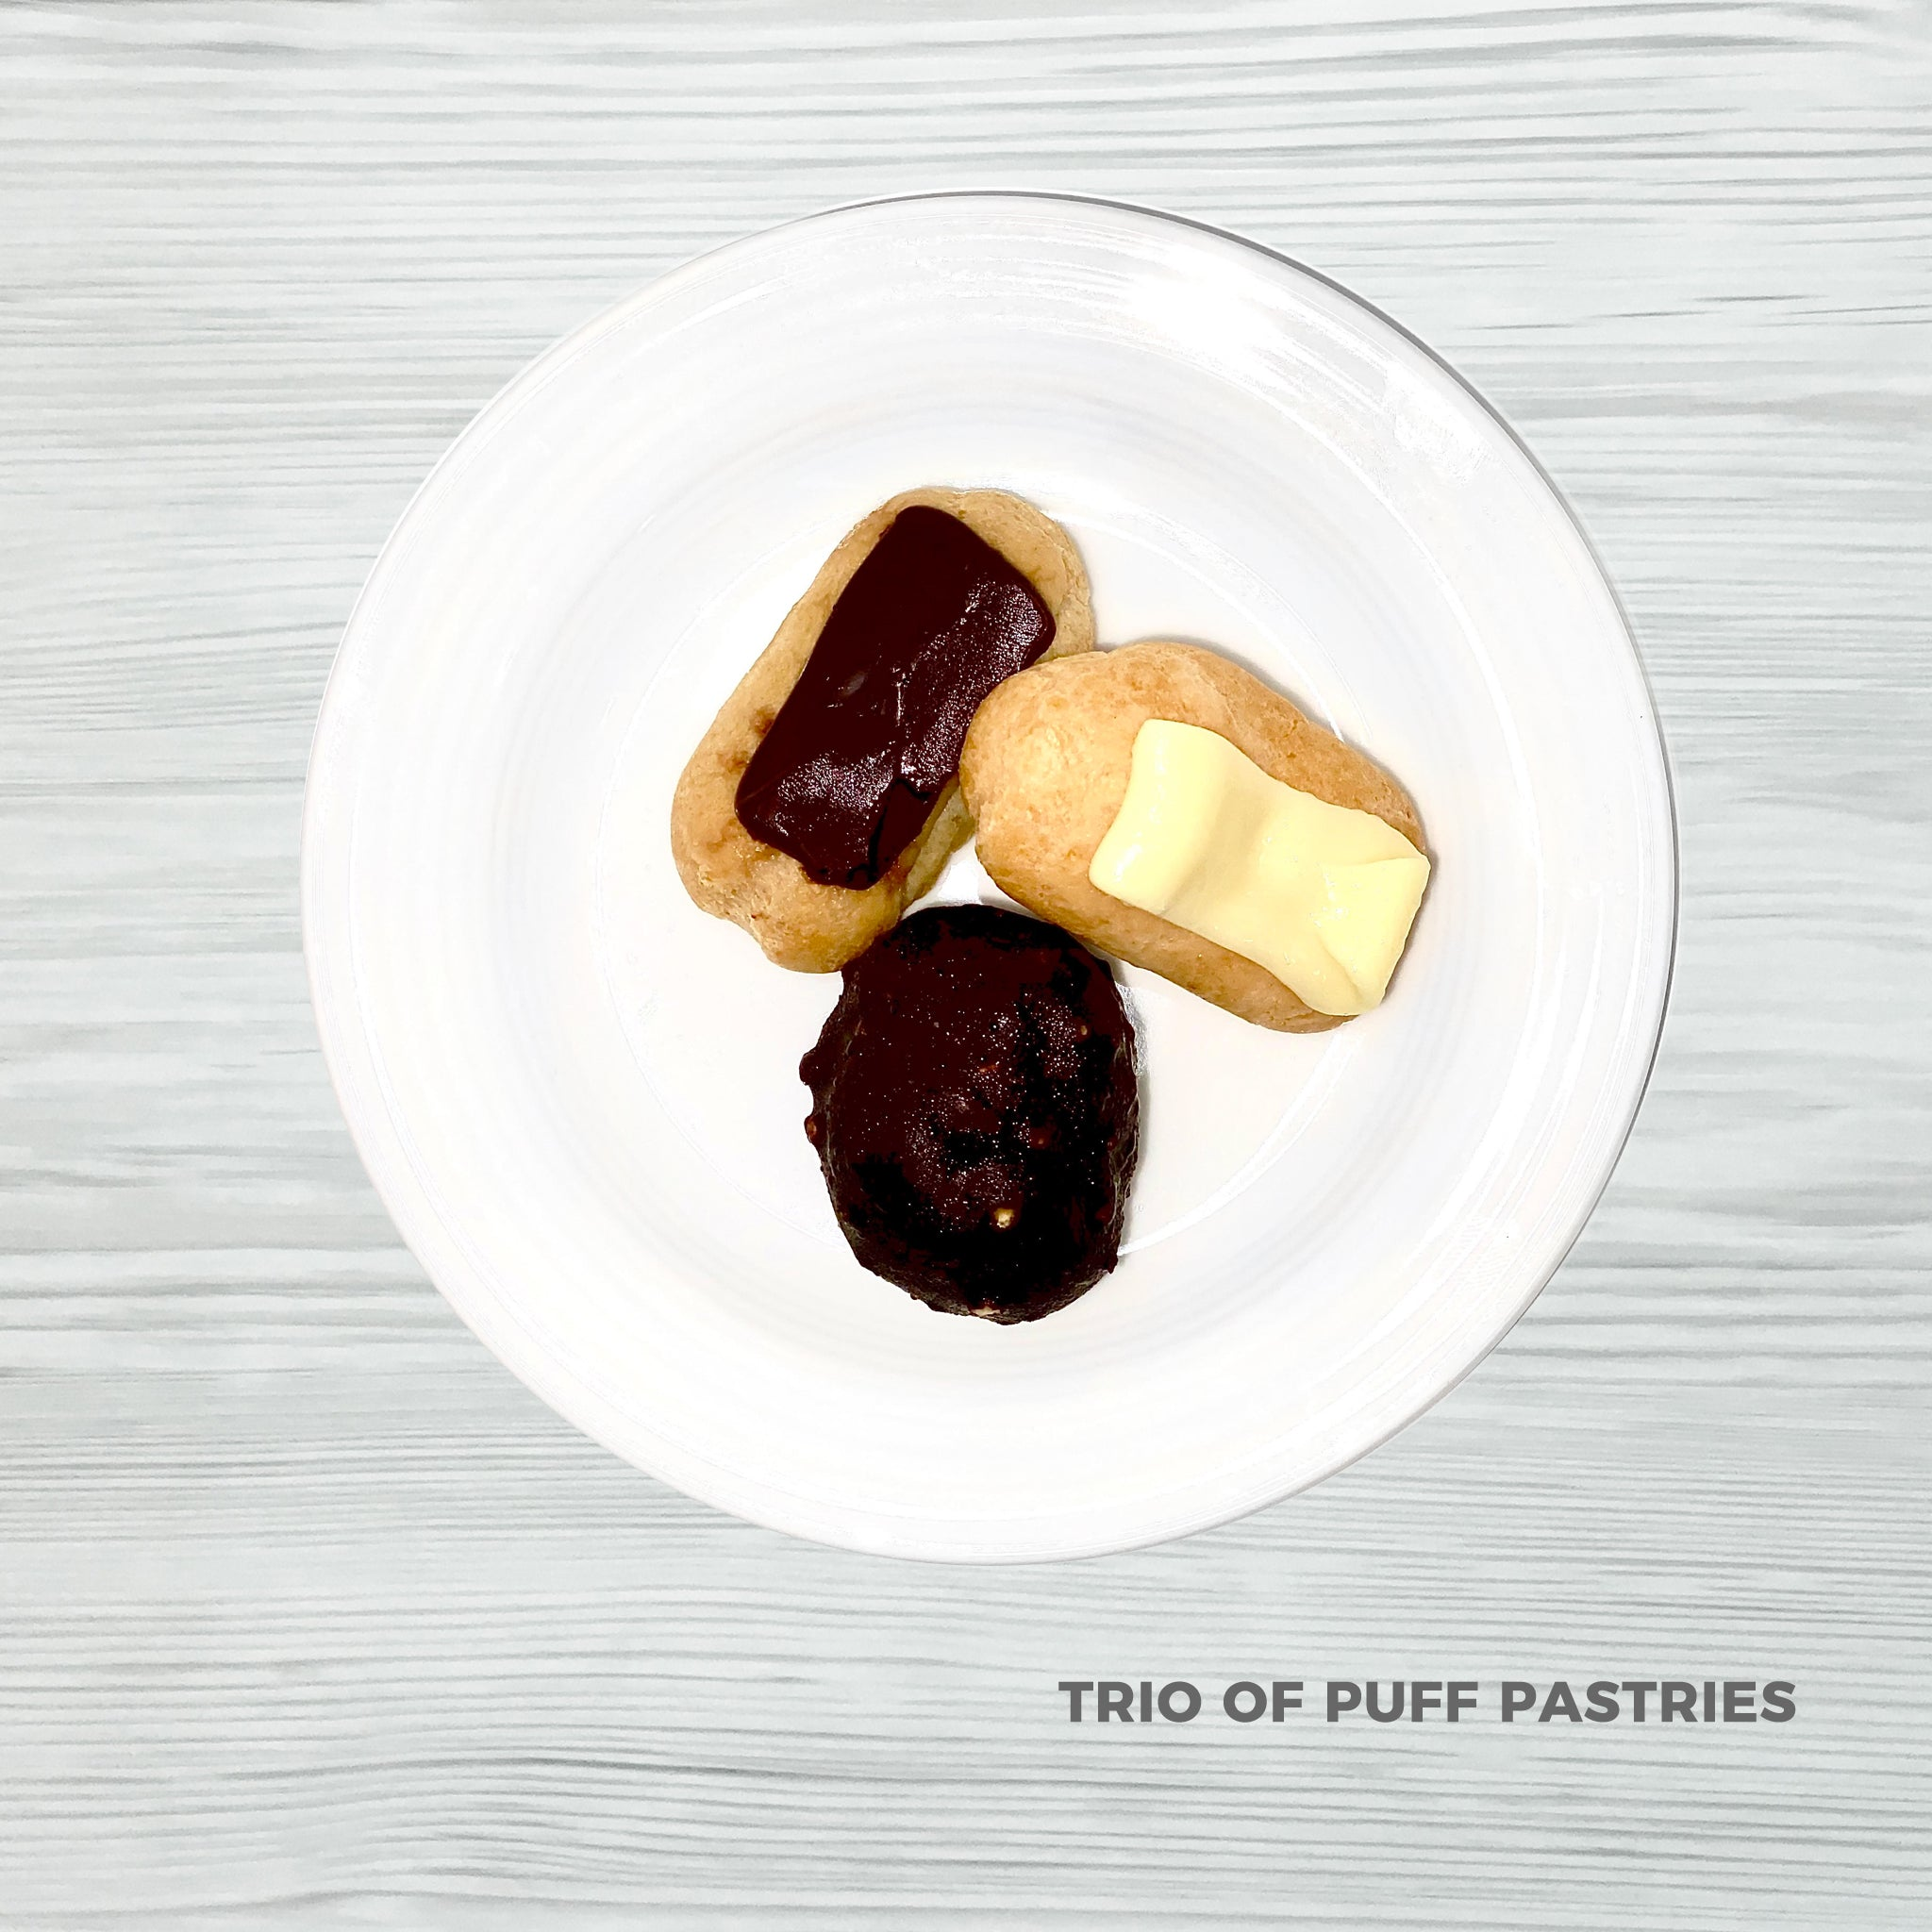 Trio of Puff Pastries